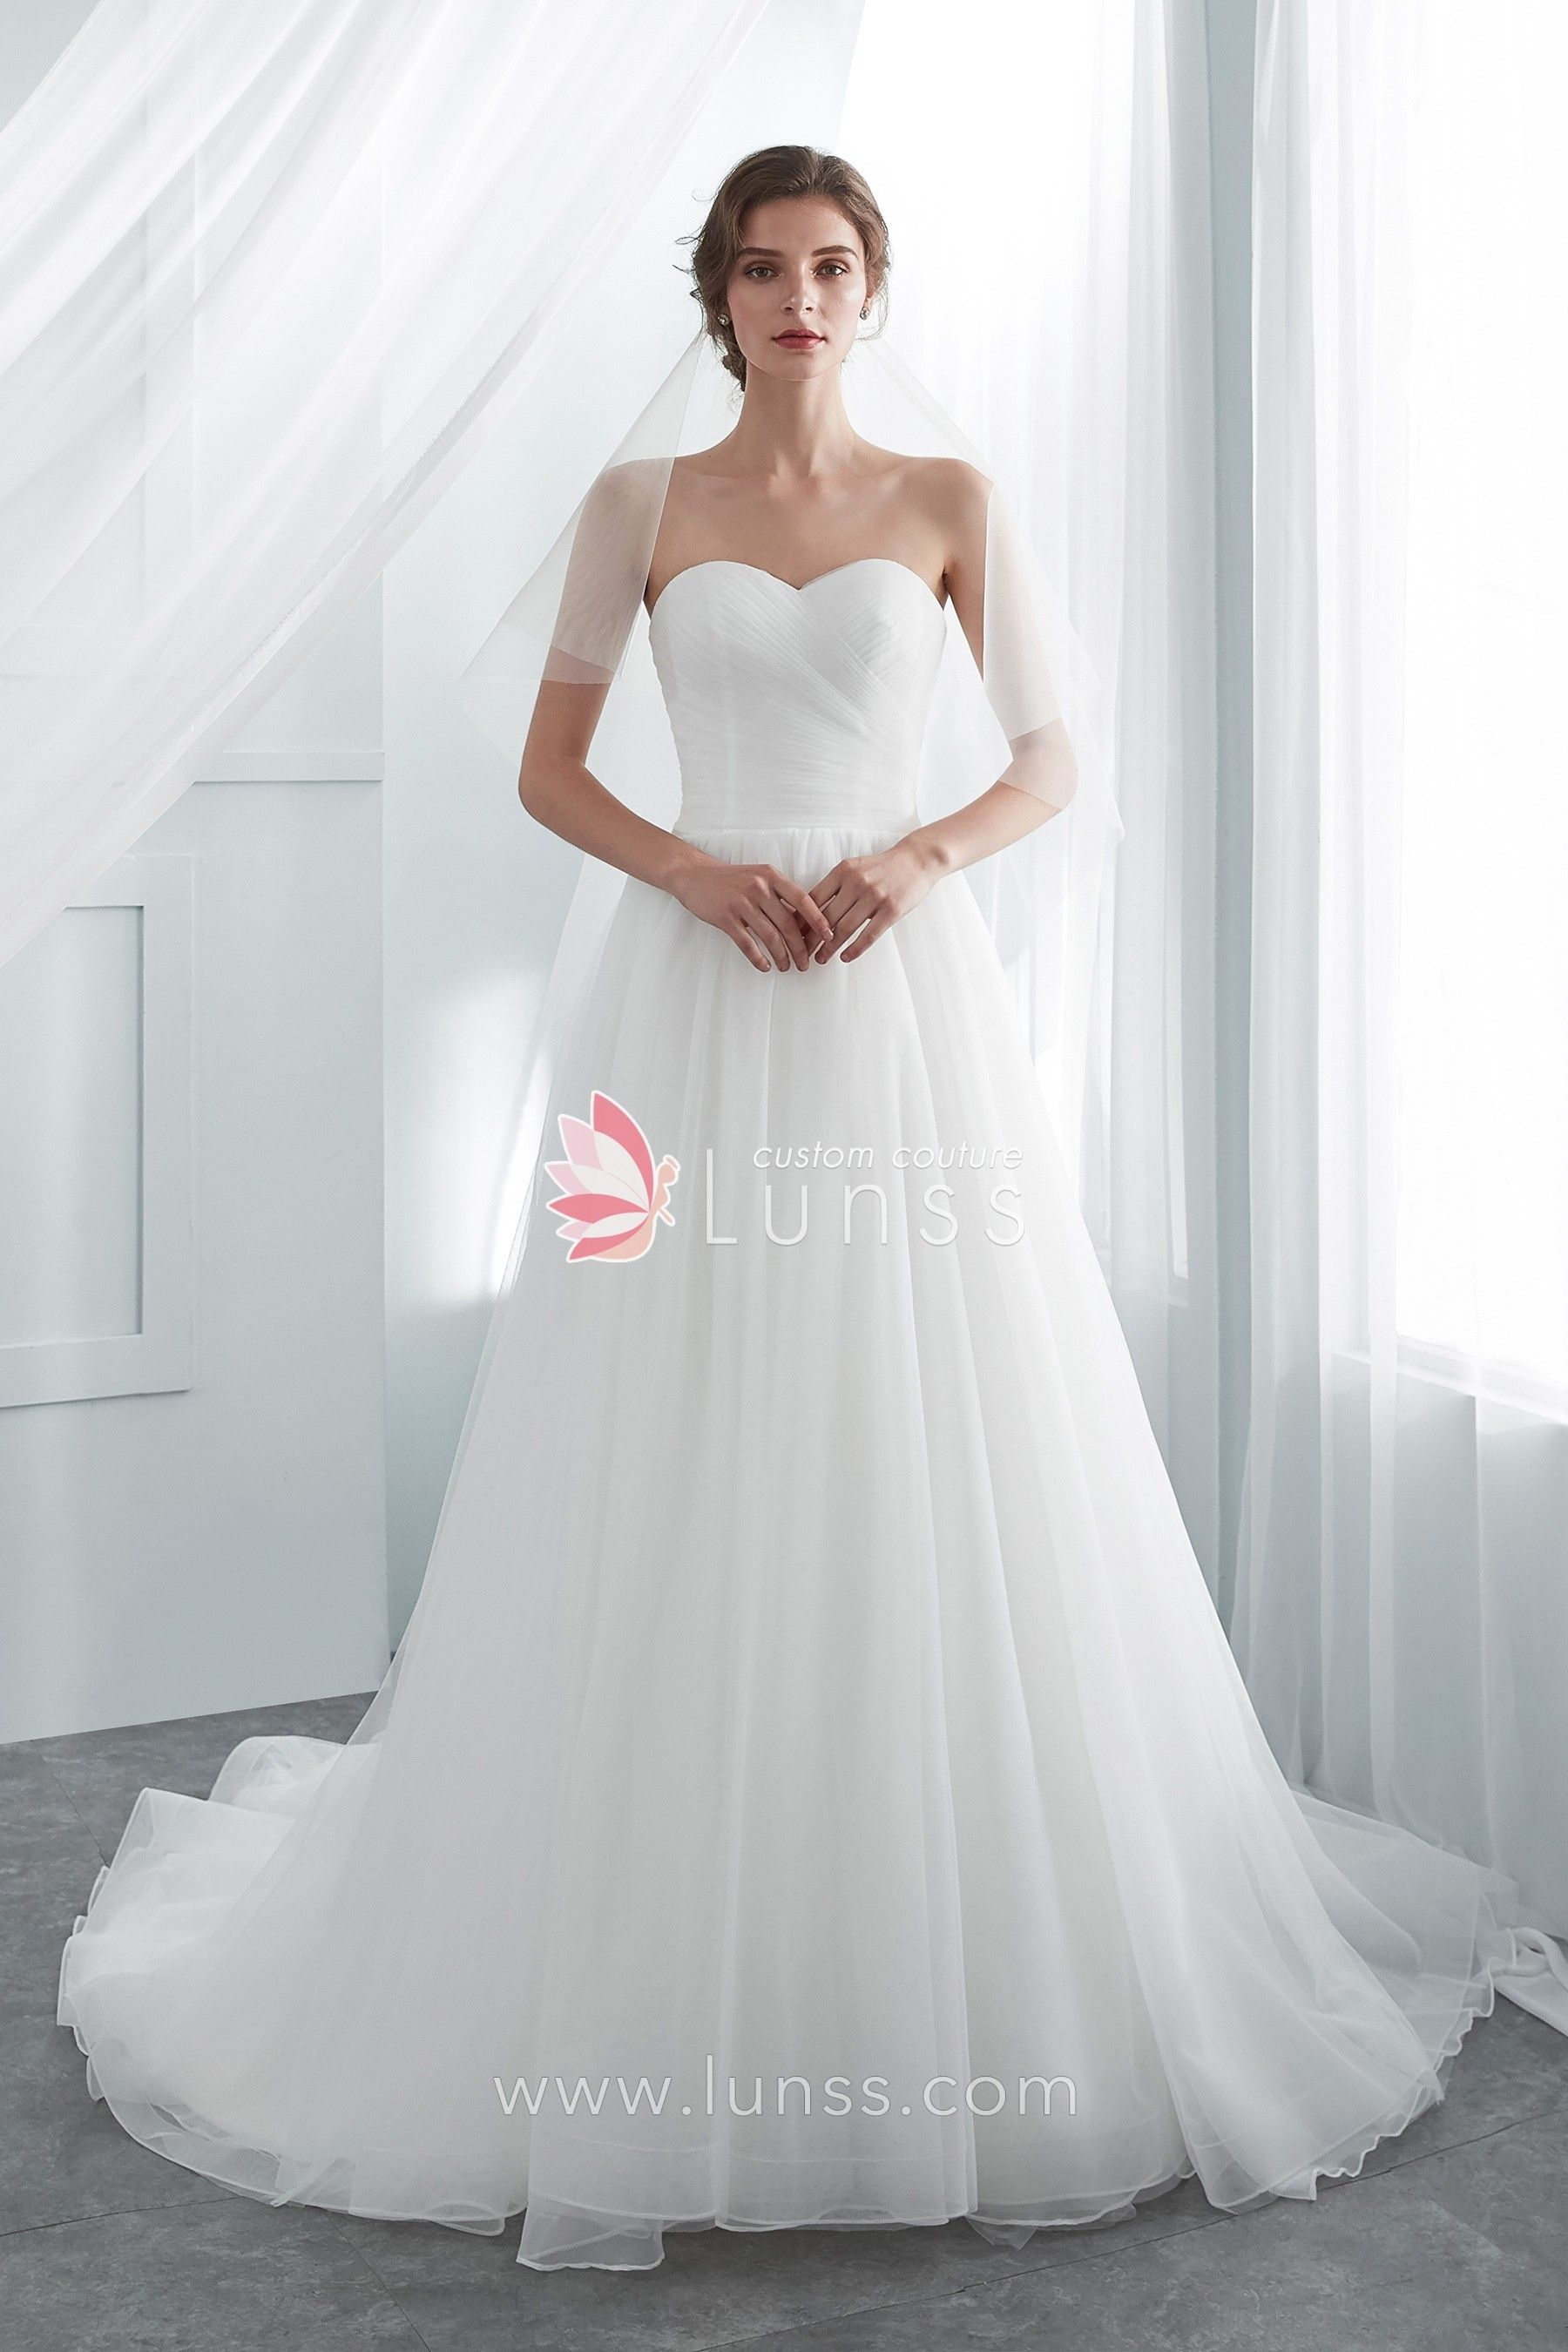 2c6145e6c28fa Sleek and chic, this soft tulle wedding gown is simple lovely with a  strapless sweetheart